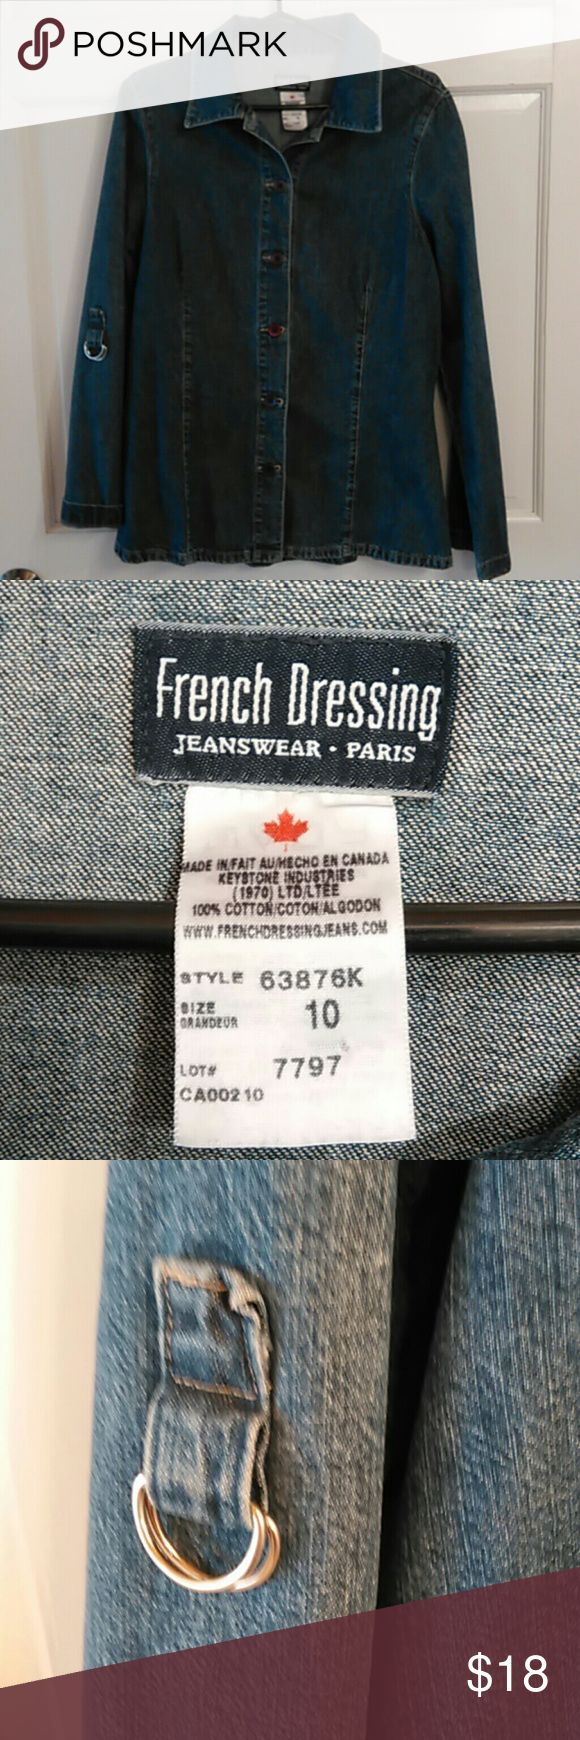 French Dressing Jean Jacket Brand new, no stains or rips; size 10 Jackets & Coats Jean Jackets